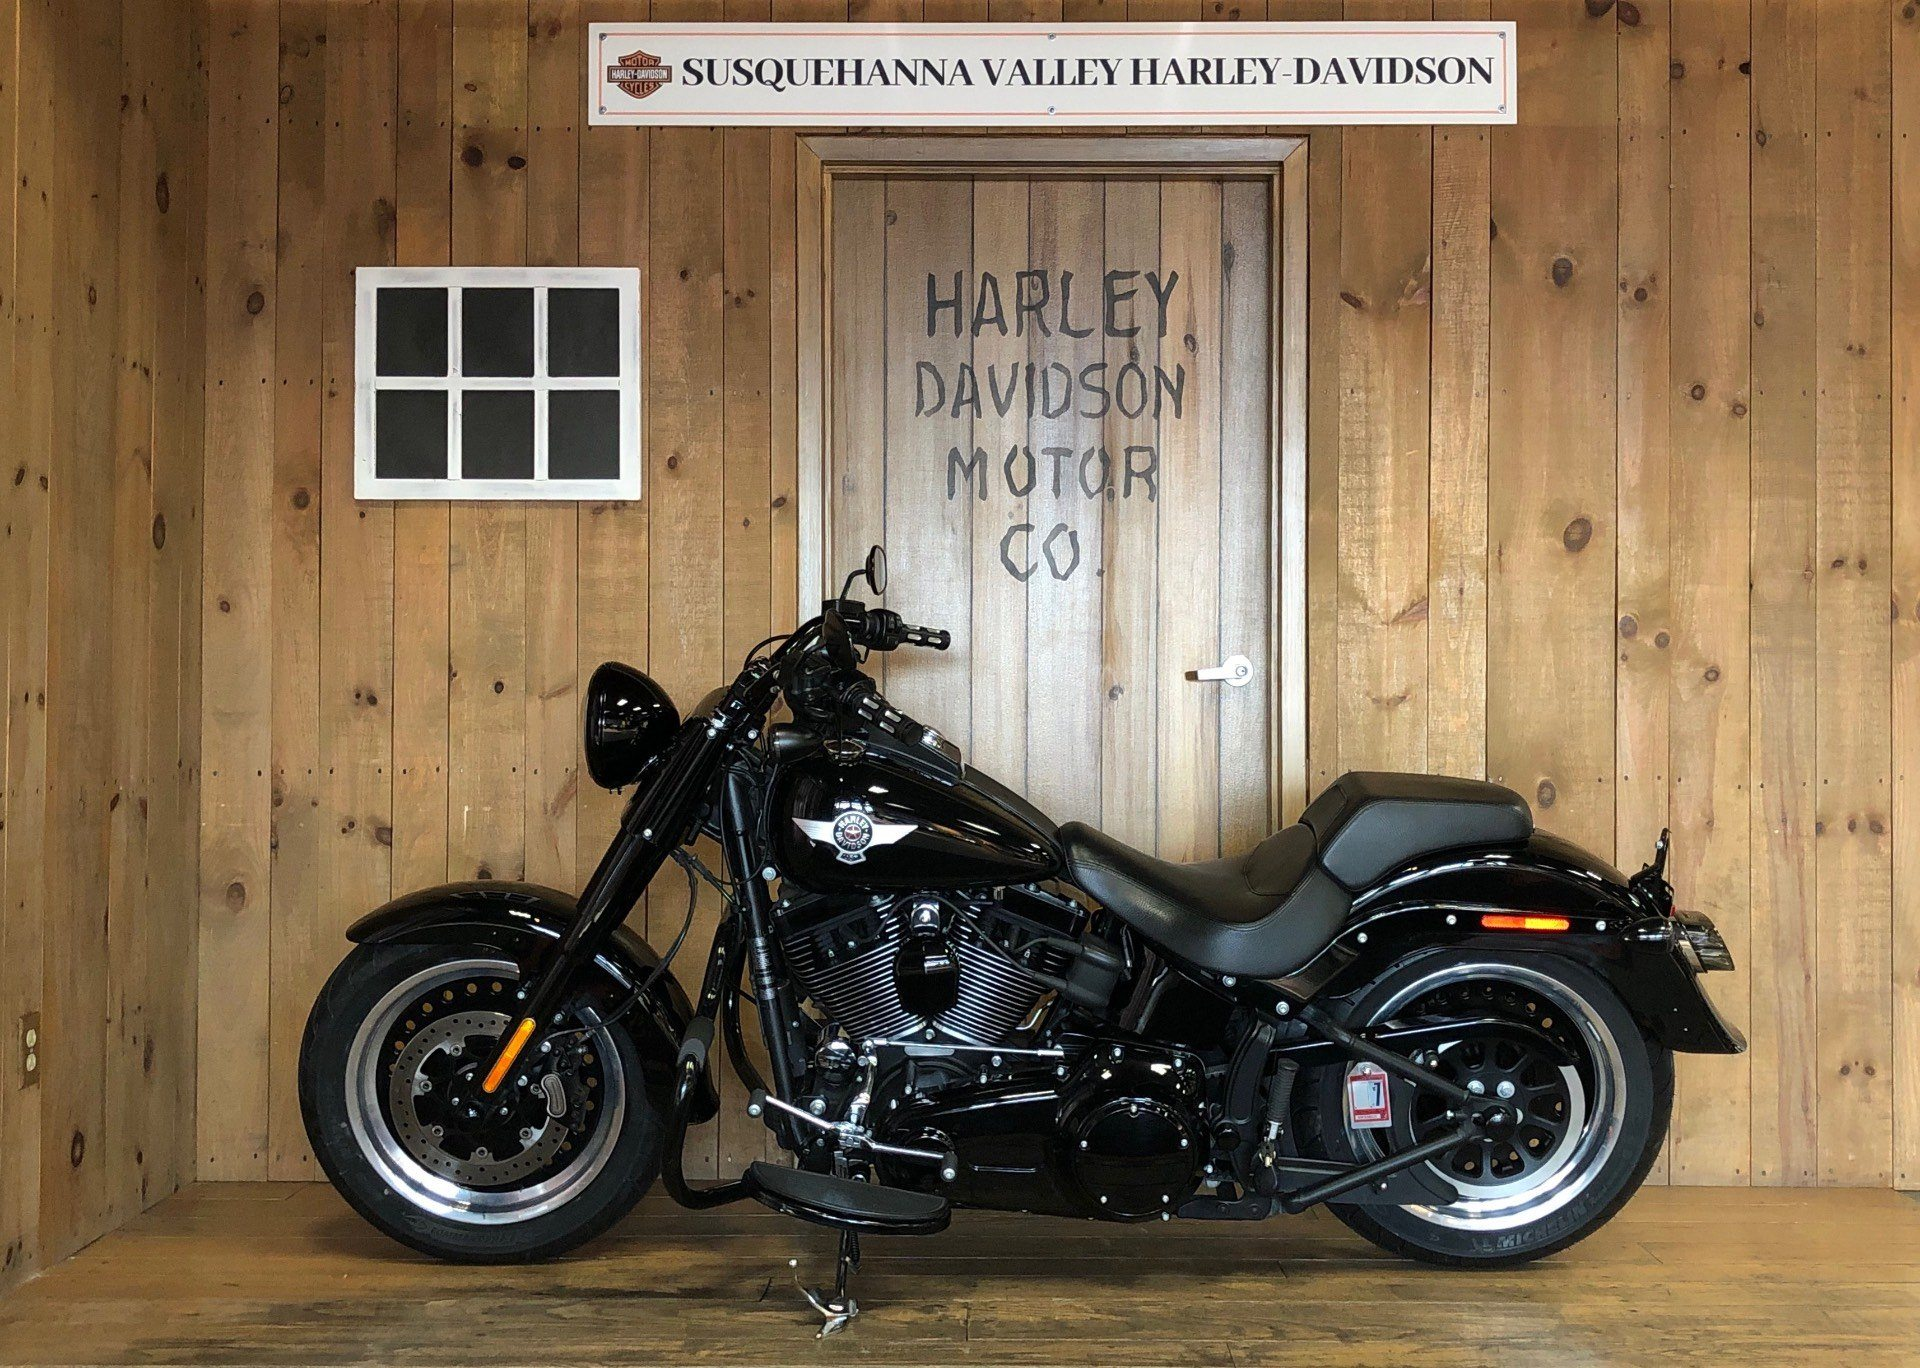 2016 Harley-Davidson Fat Boy Lo w/ 110 Motor in Harrisburg, Pennsylvania - Photo 5